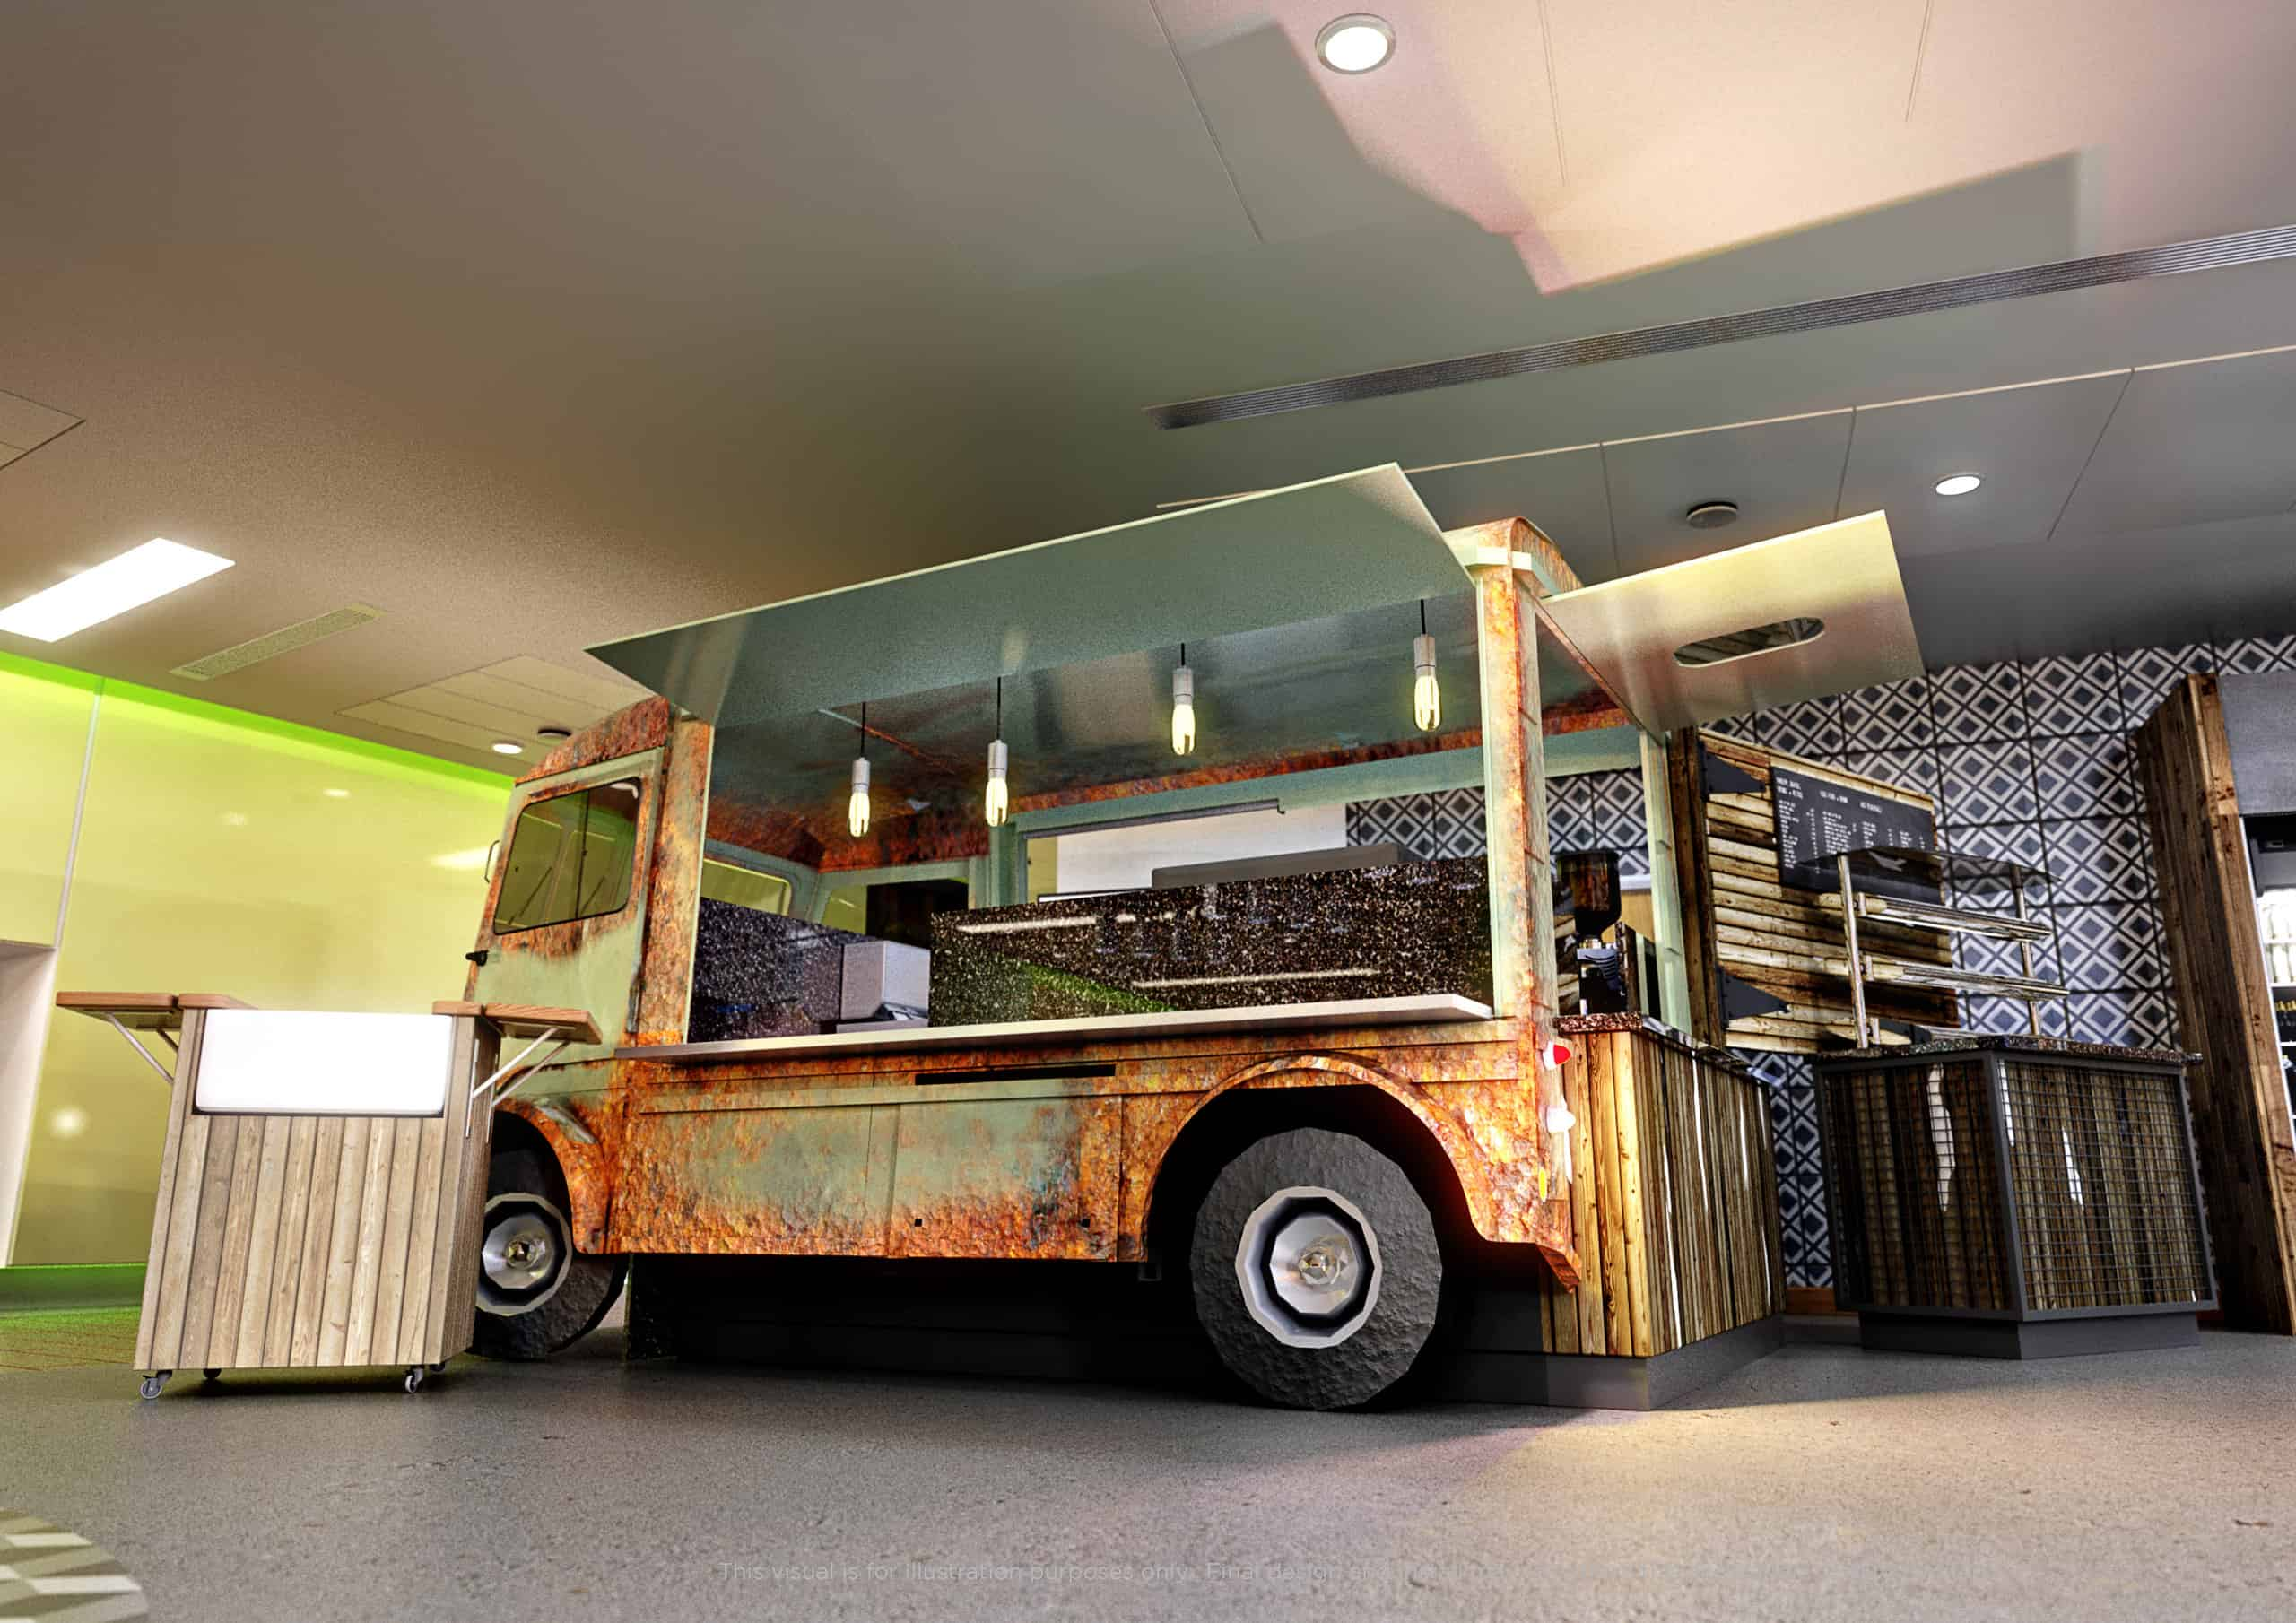 RDA – Street Food in the Workplace